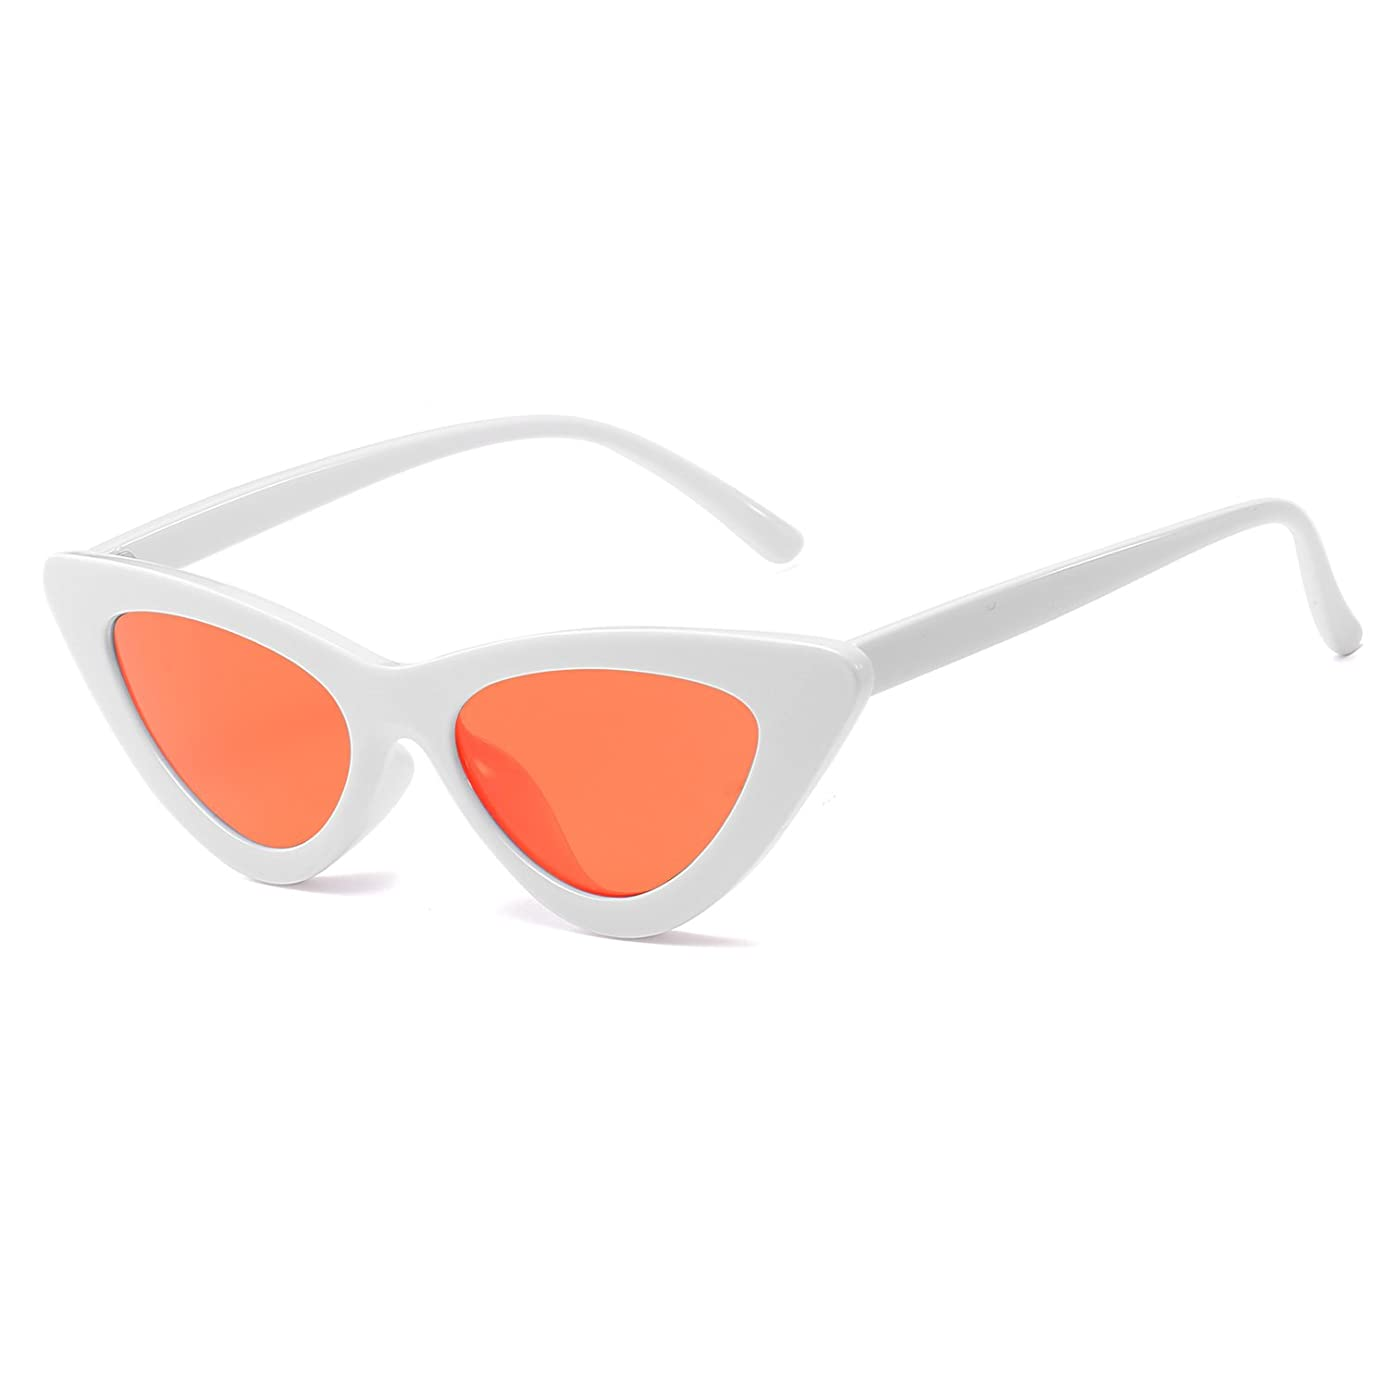 SightMax Retro Style Cat Eye Glasses are Suitable for women's Sunglasses